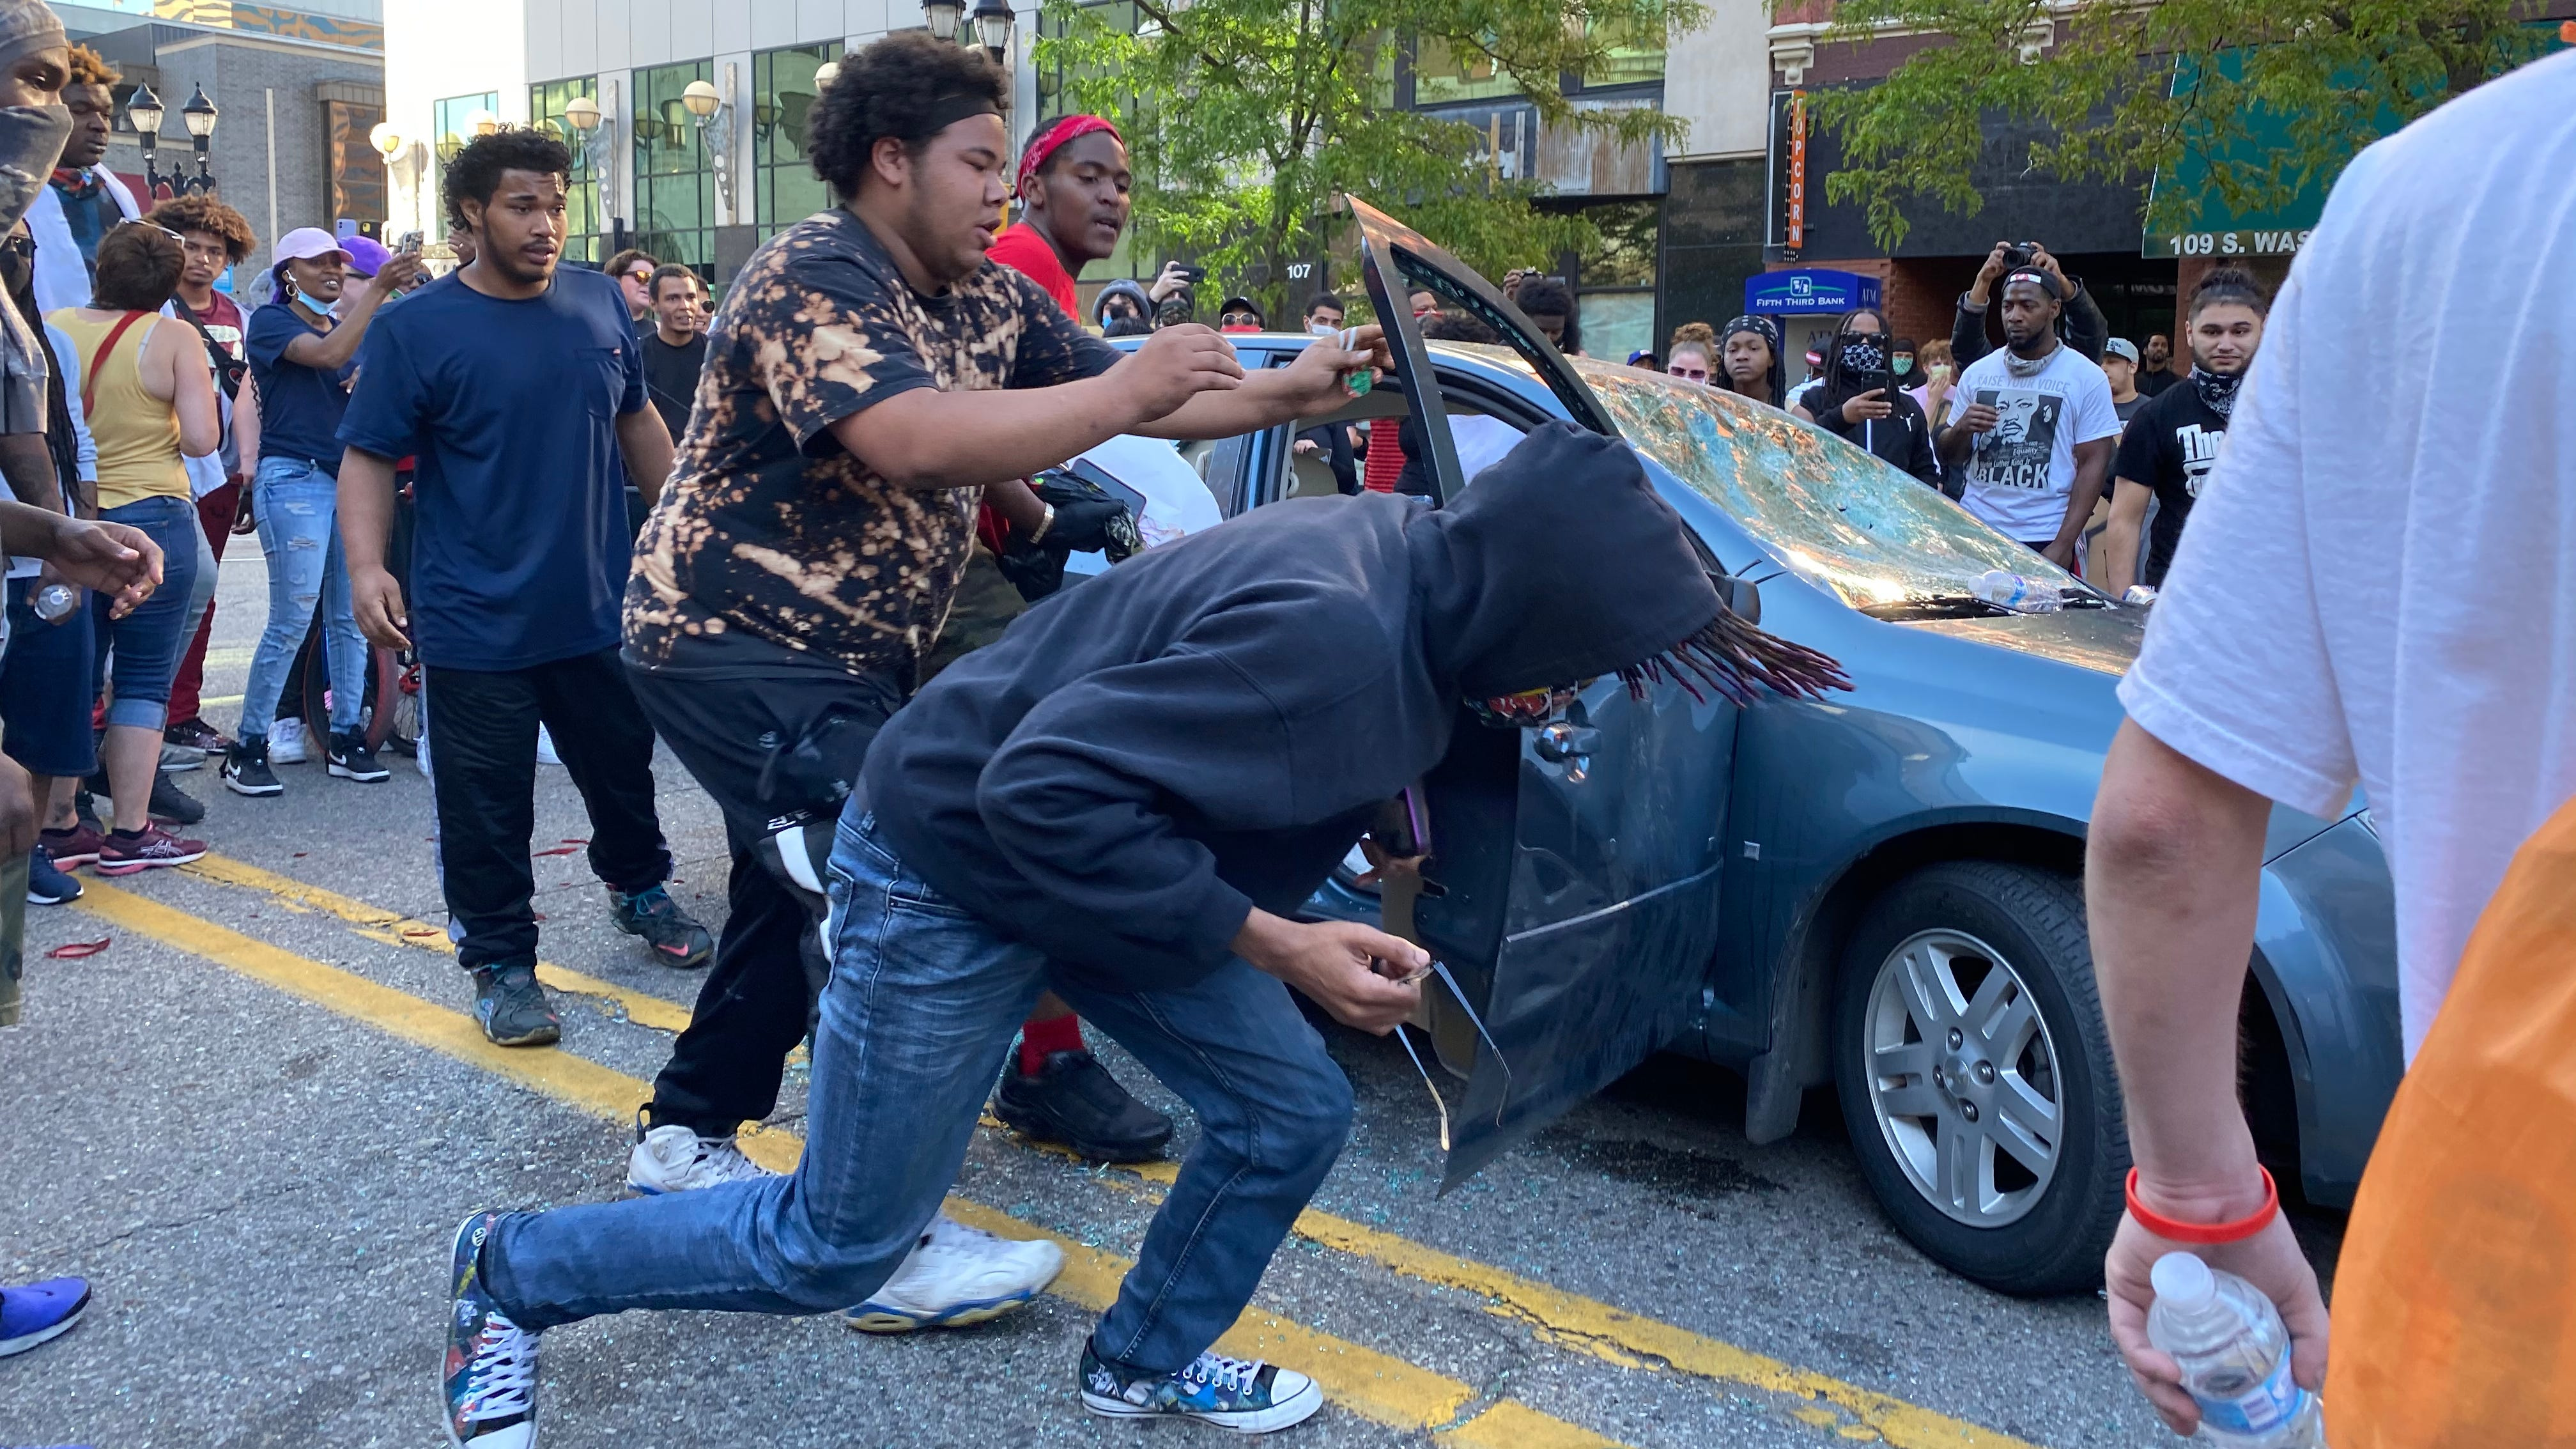 Videos: Woman drove through crowd, nearly hit marchers during protest